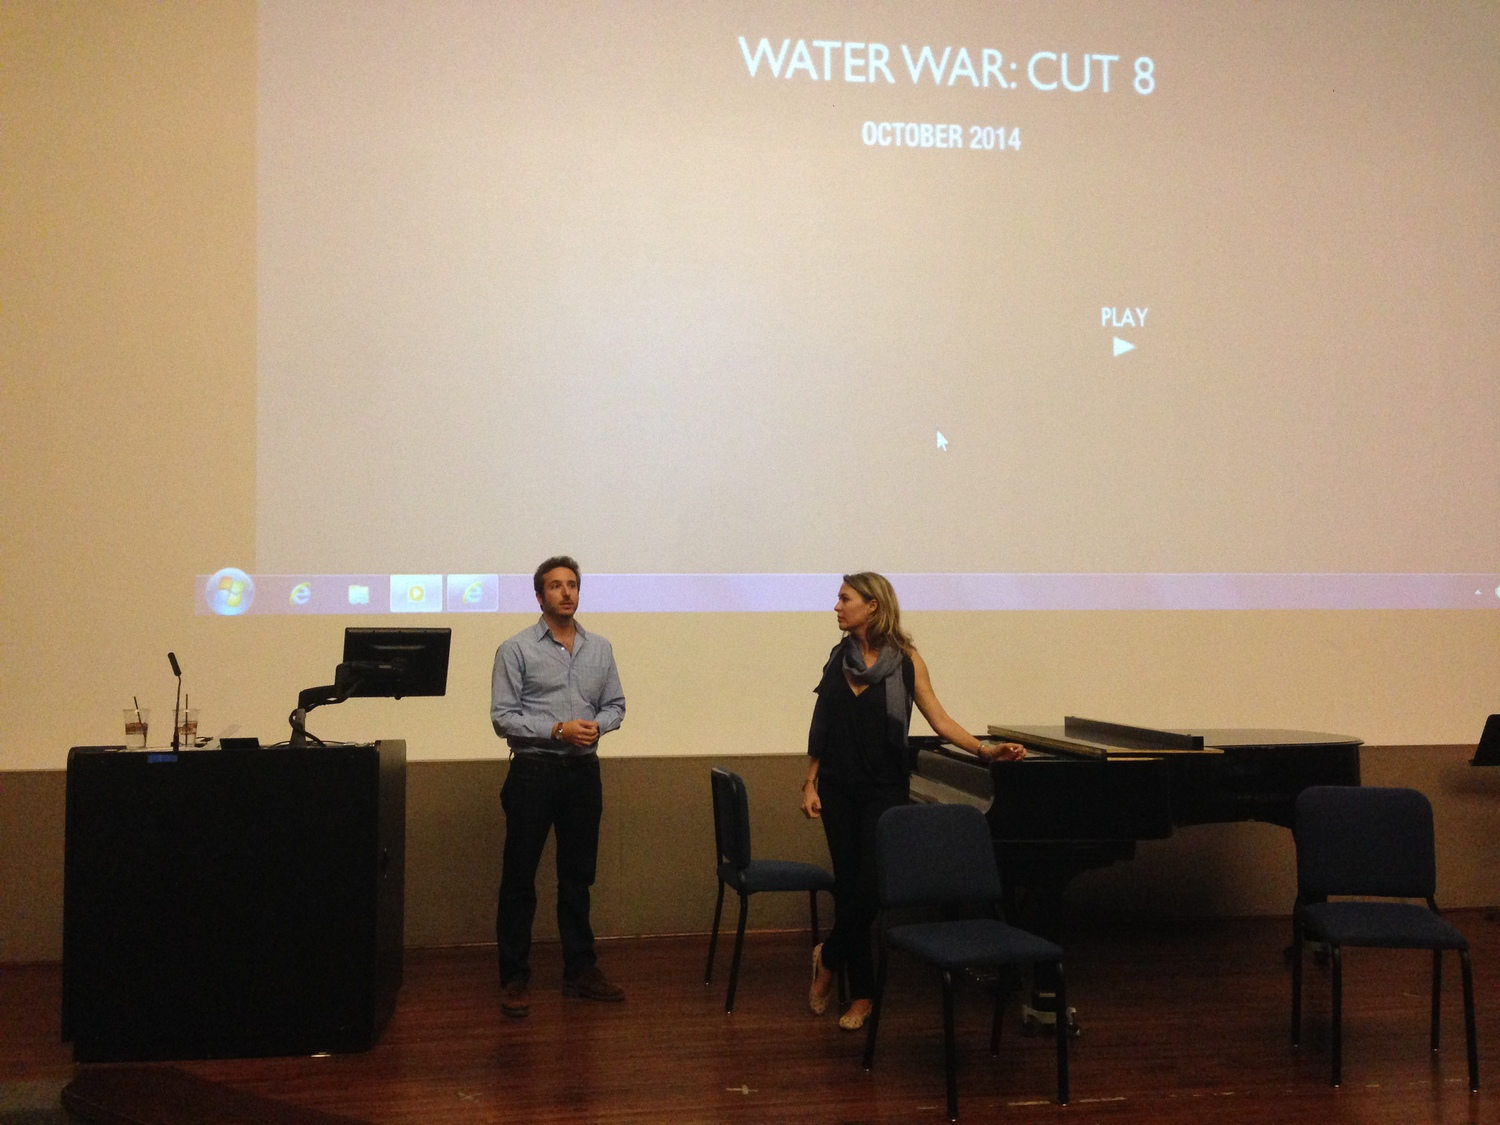 """Co-directors Nick Louvel and Michele Mitchell screening Cut 8 of """"Water War"""" at Texas Christian University. October, 2014."""